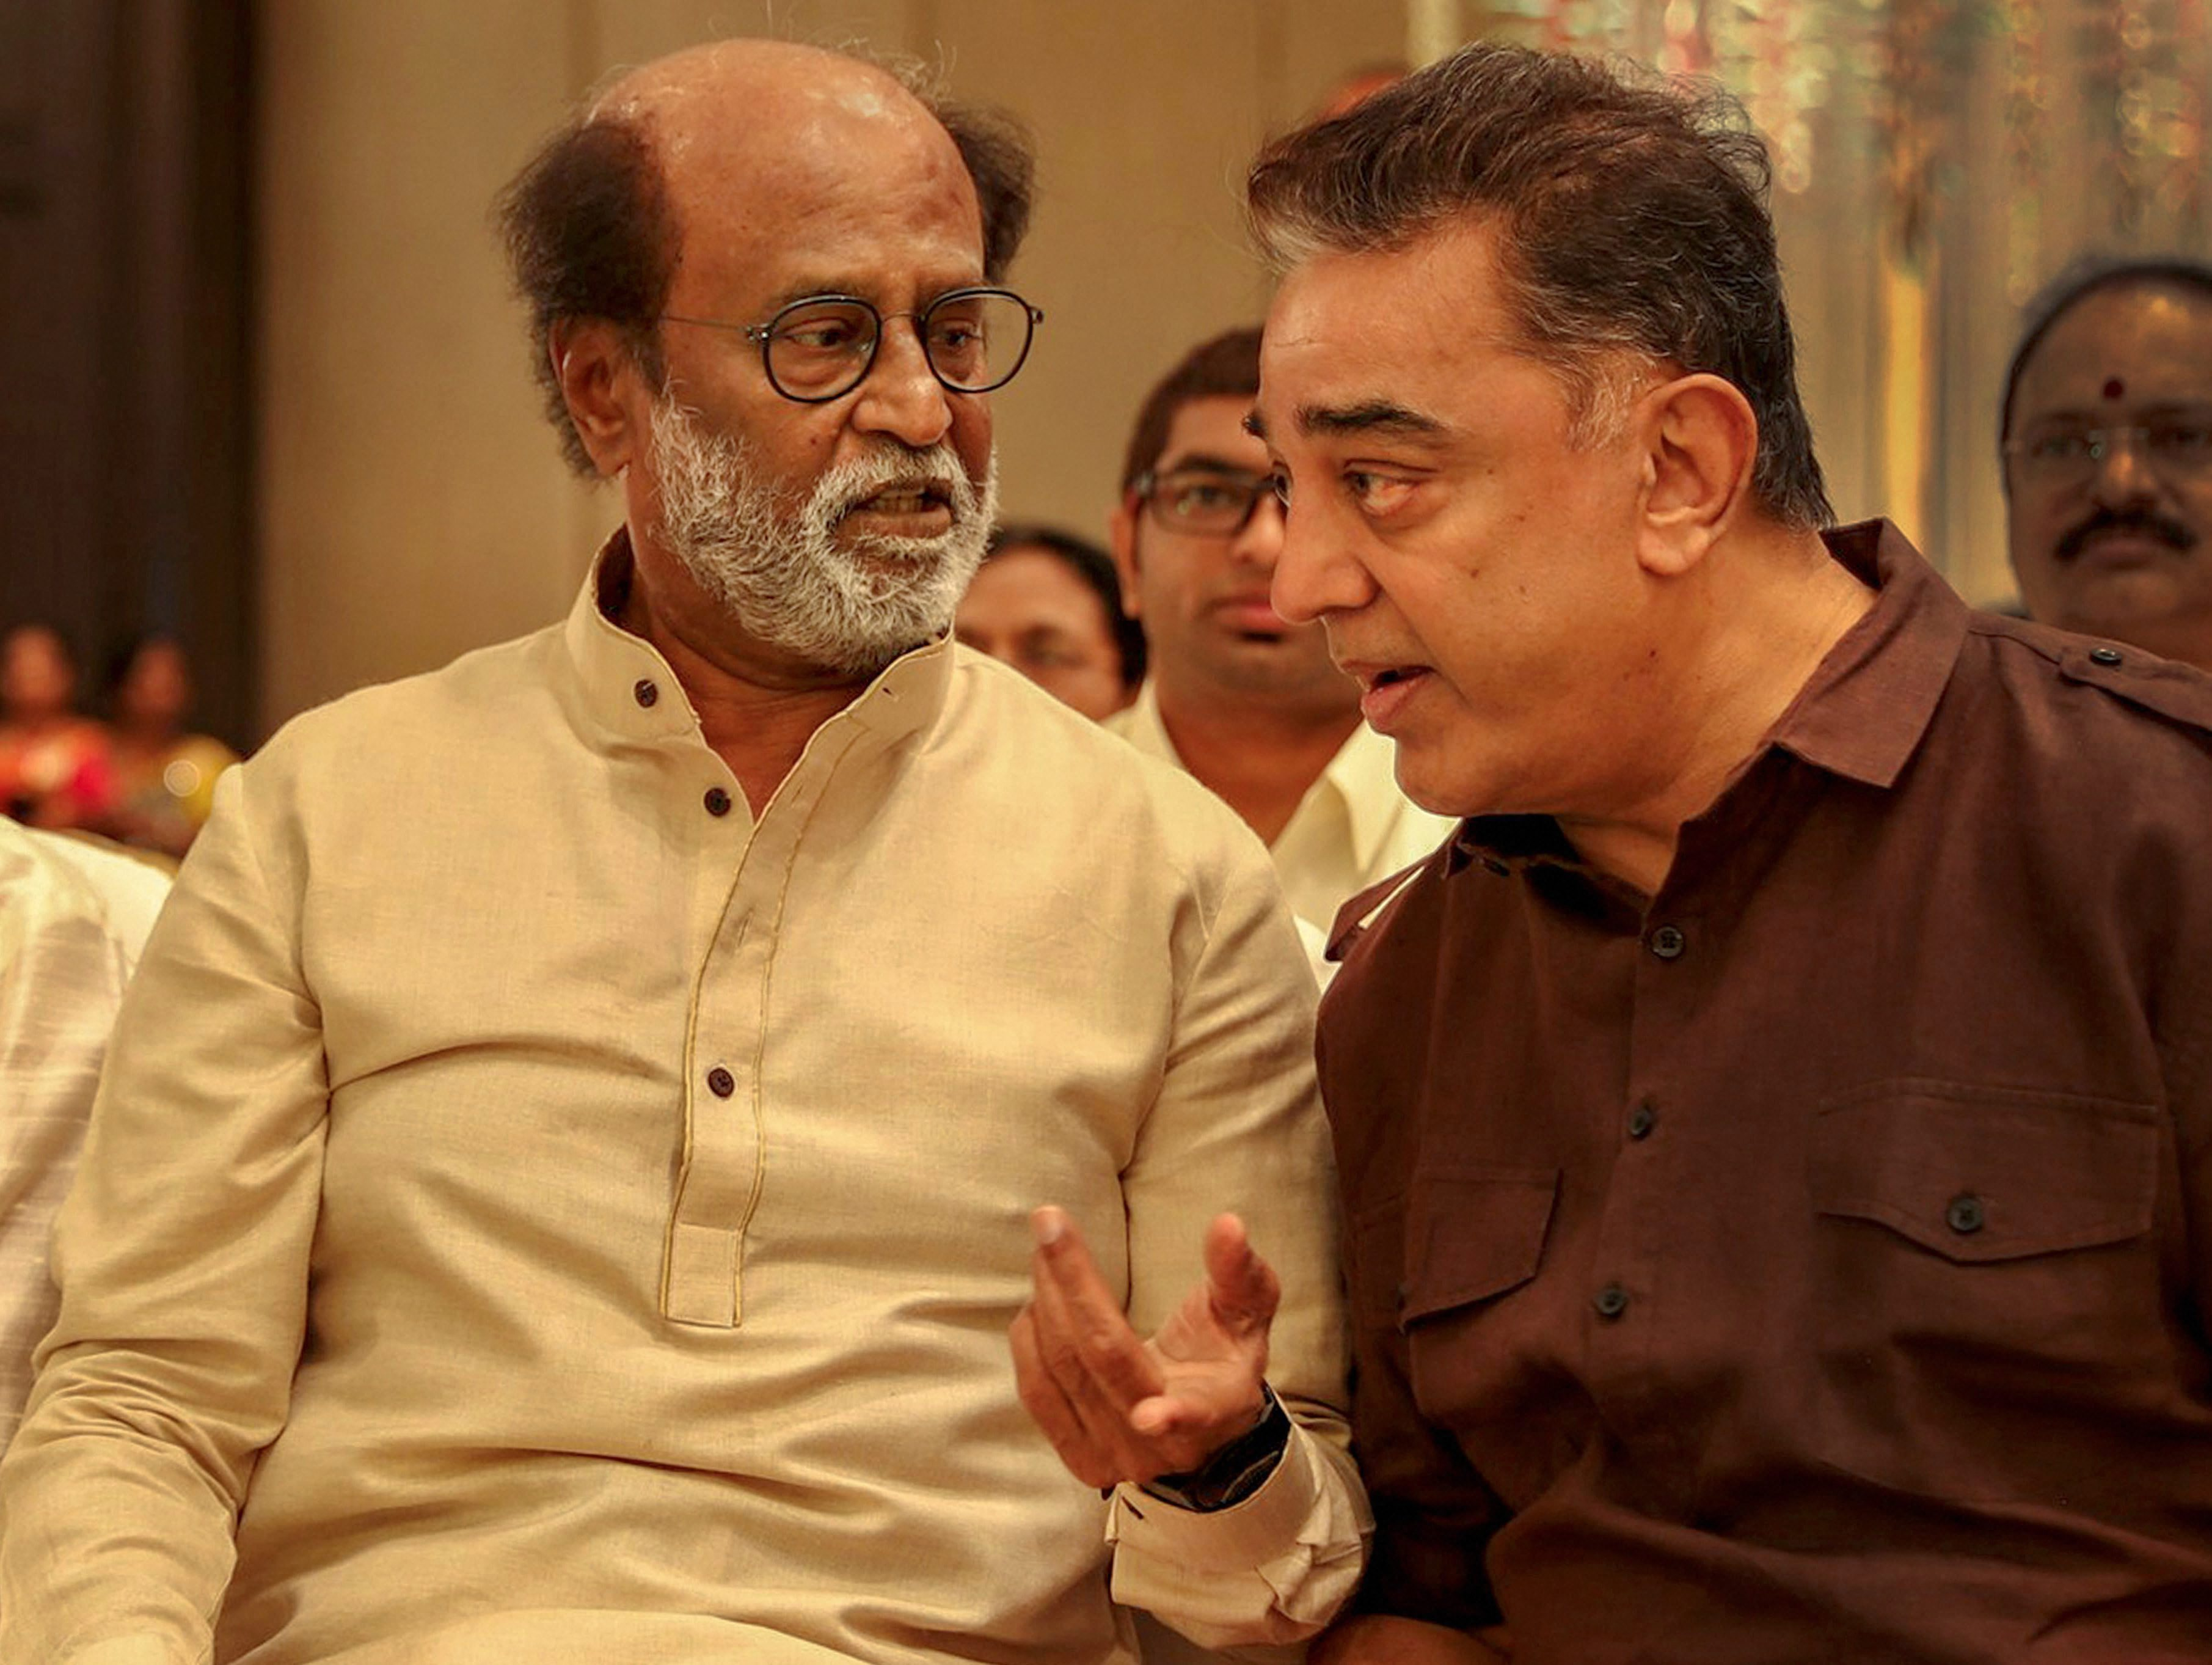 Kamal Haasan, the actor who heads Makkal Needhi Maiam, and Rajinikanth during the wedding of Rajini's younger daughter Soundarya  in Chennai on February 11.